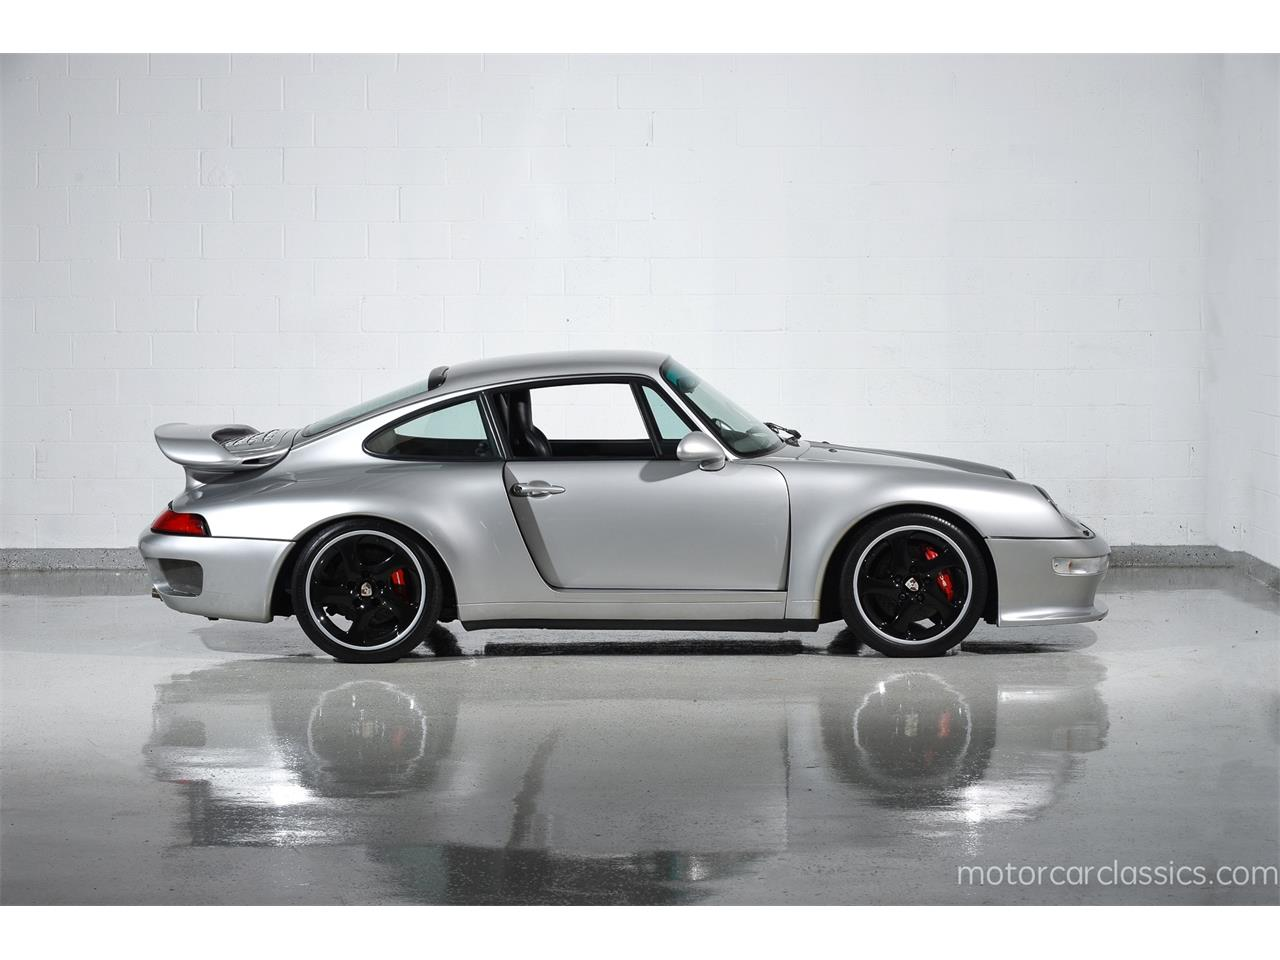 Large Picture of '96 Porsche 911 Turbo - $69,900.00 - MBOA